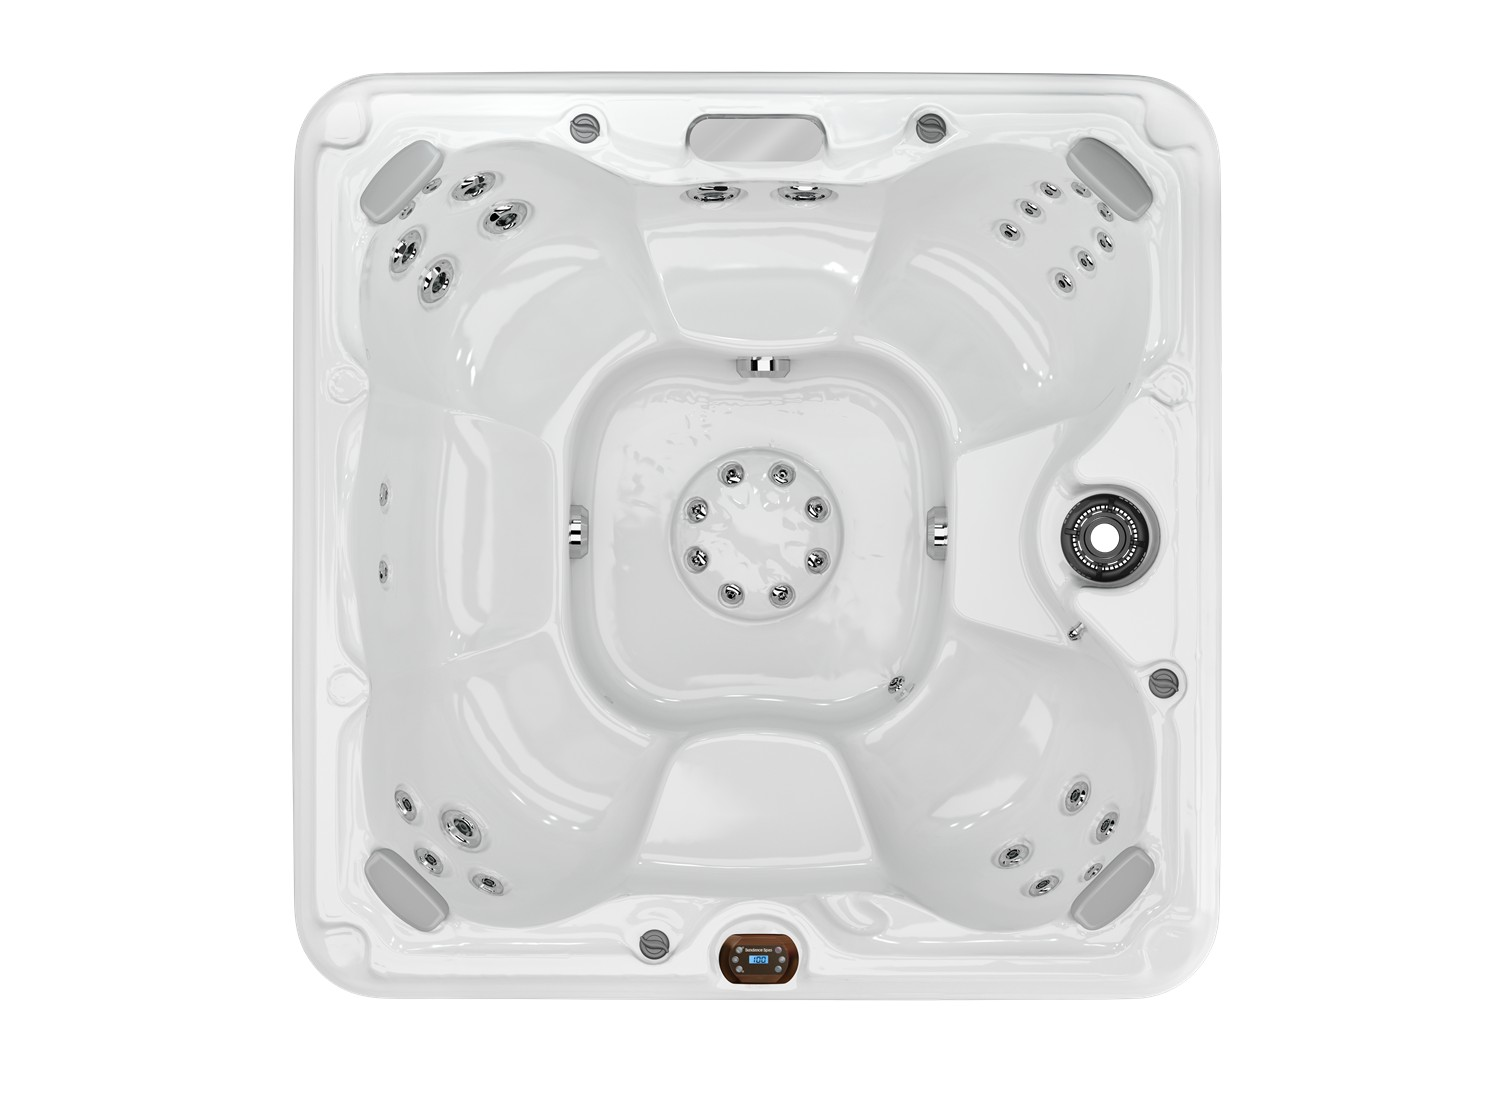 Edison Hot Tub by Sundance Spas - Emerald Spa and Billiards 49512